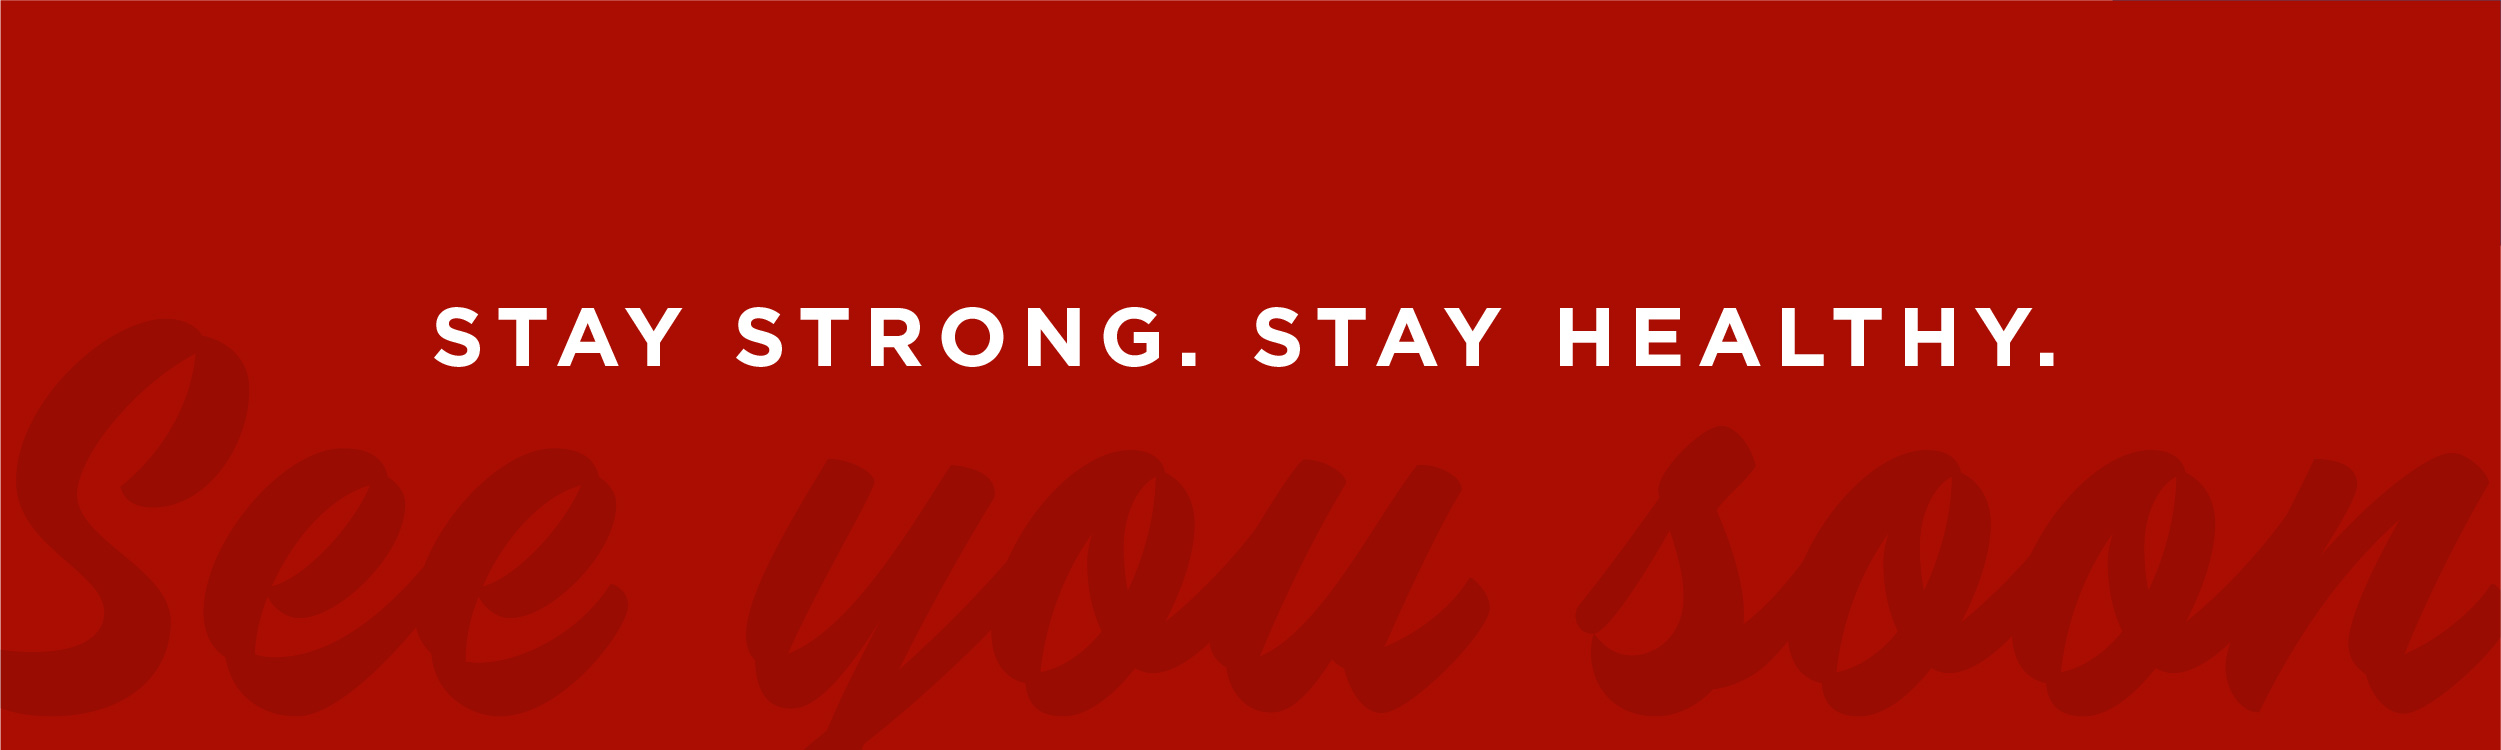 STAY STRONG. STAY HEALTHY.